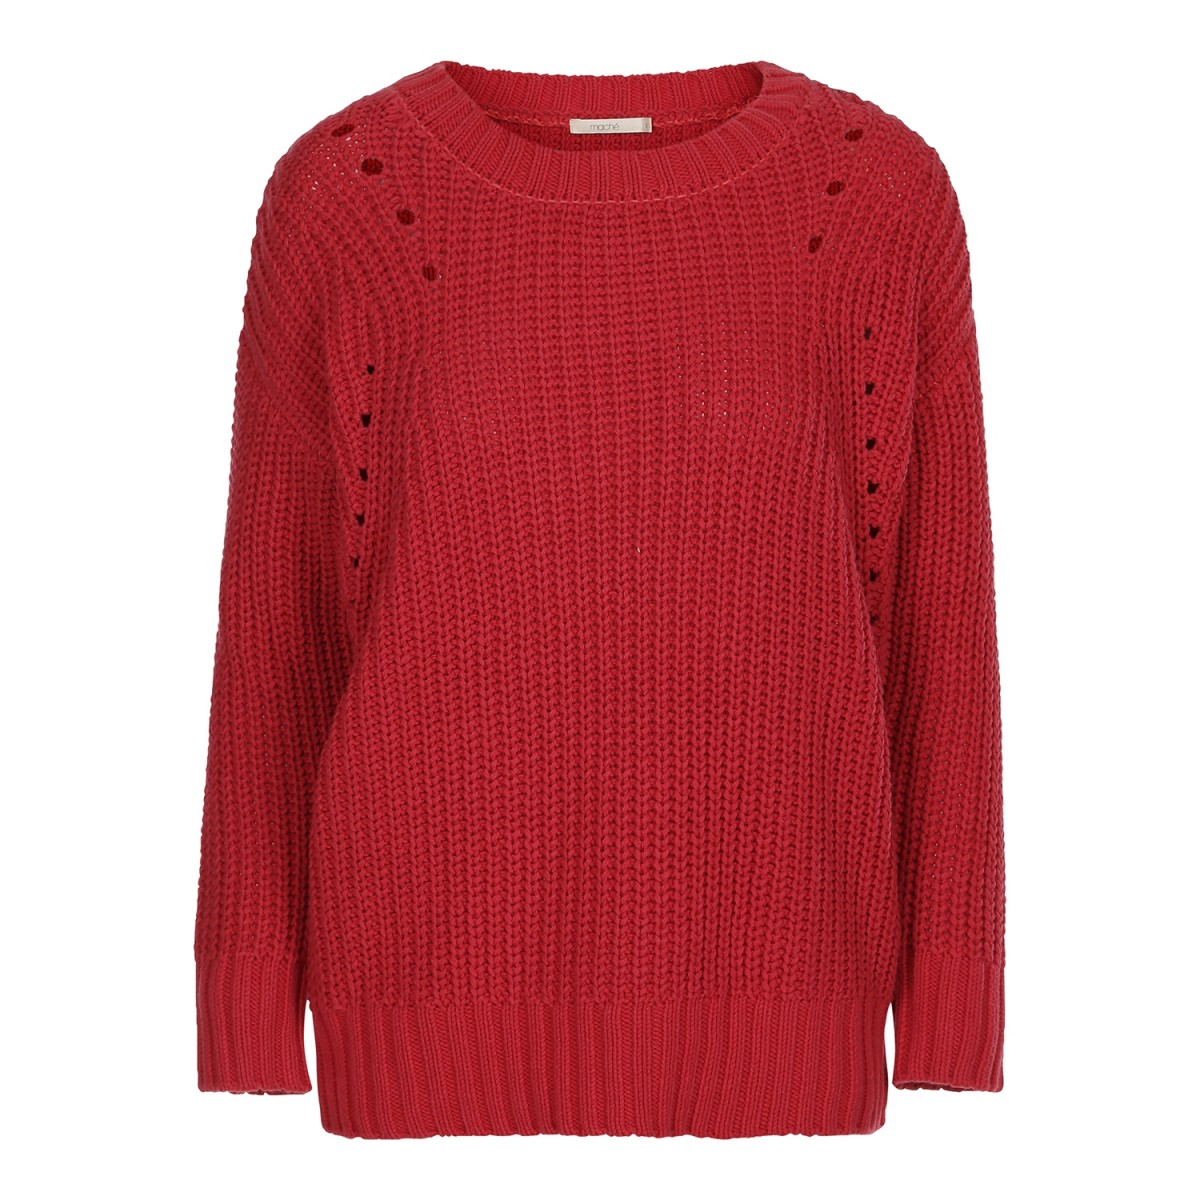 Maché Nora Blouse Red-31